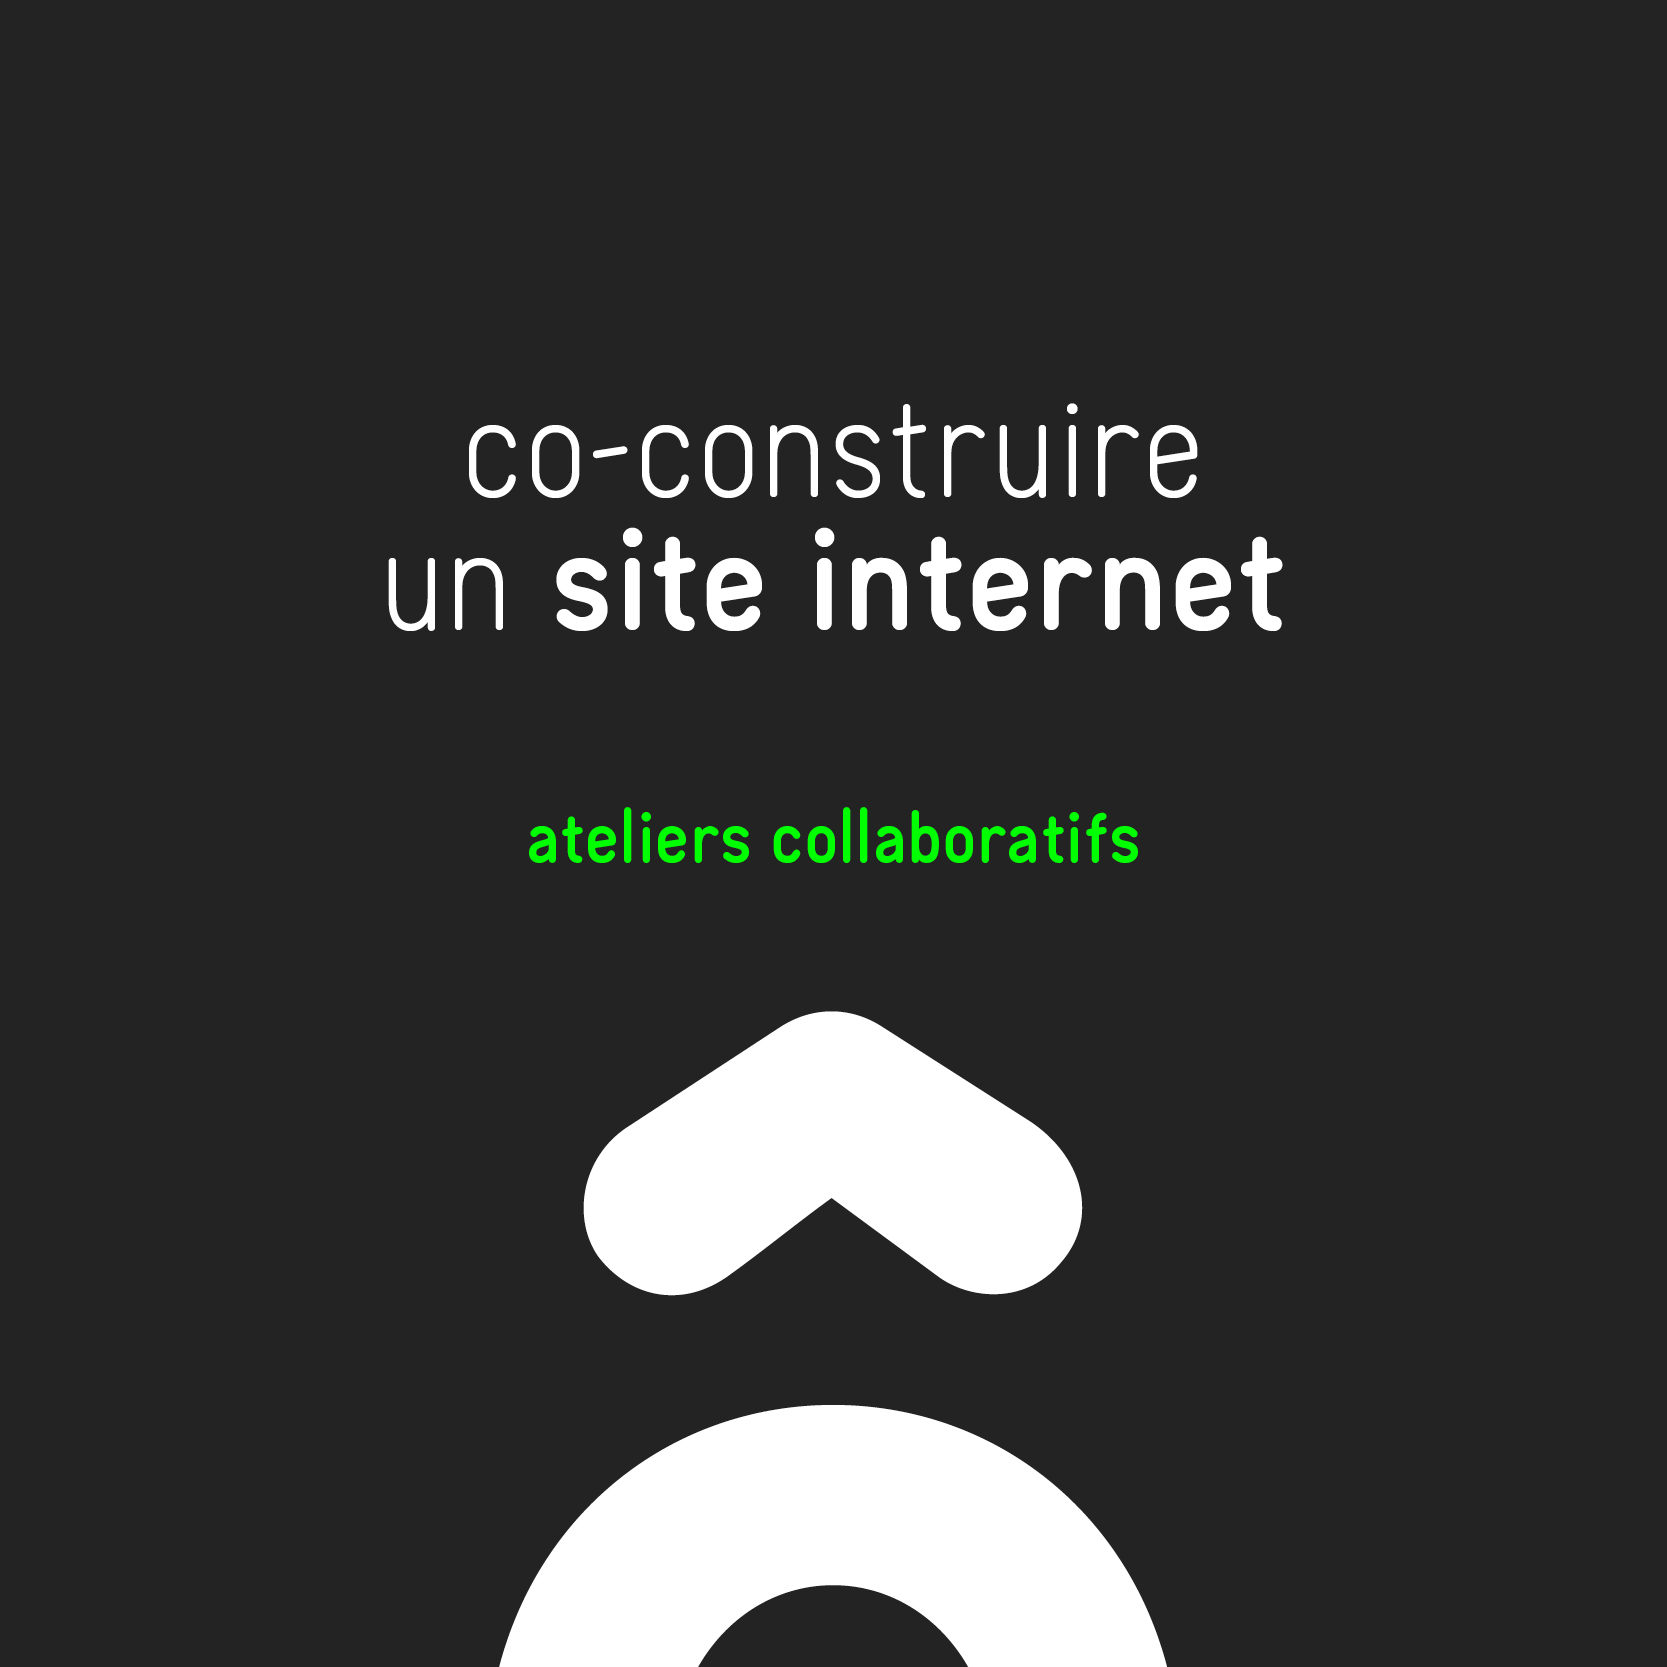 Co-construire un site internet